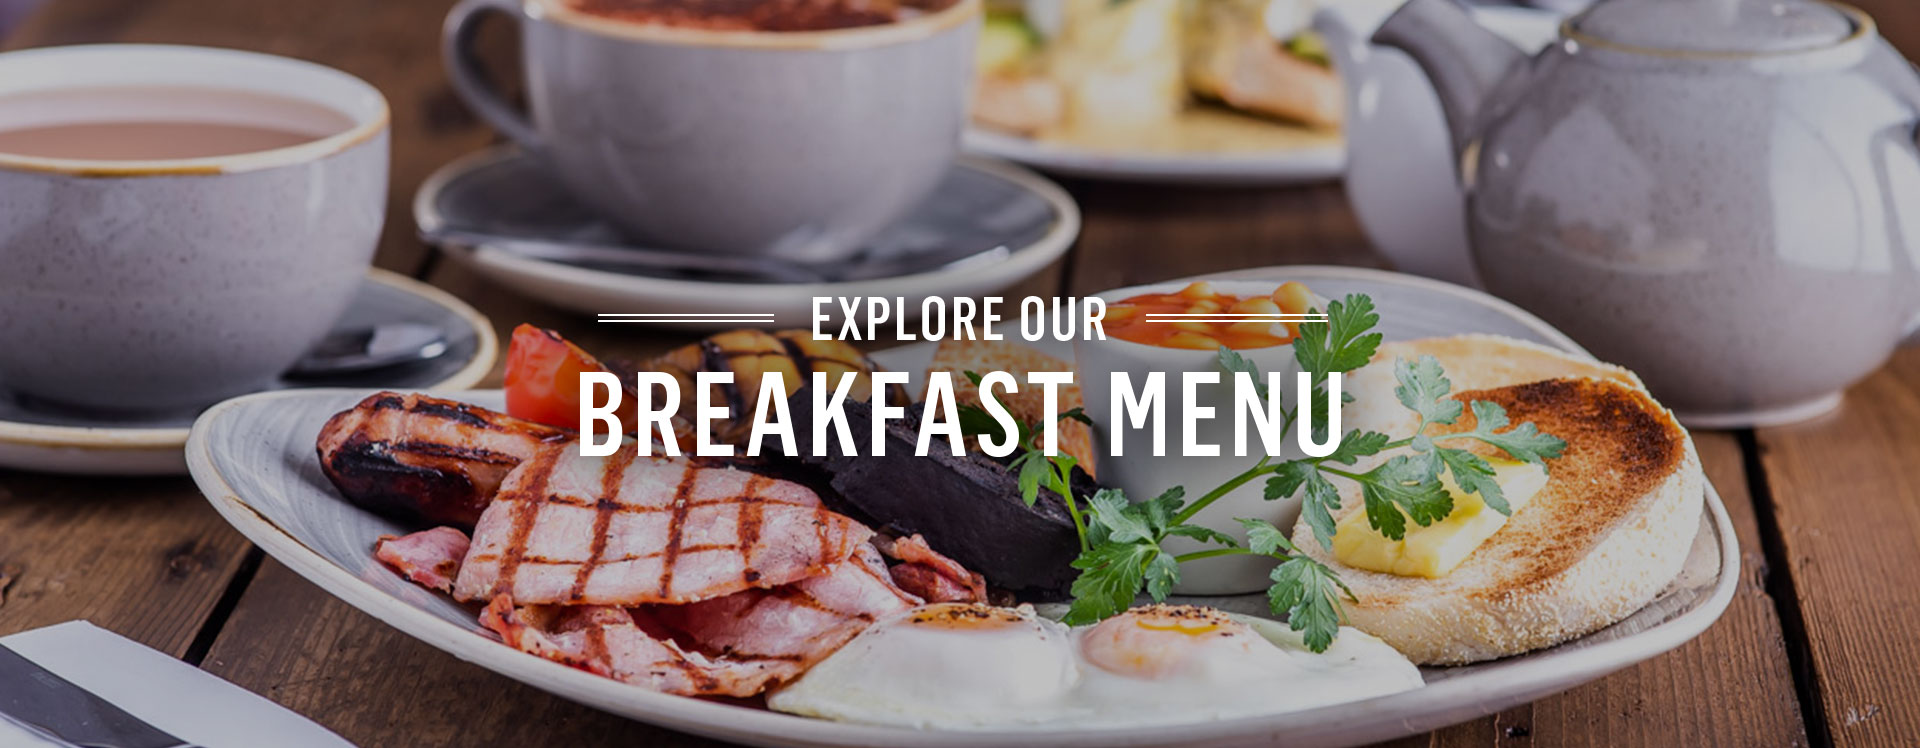 Breakfast at The Sawyer's Arms - Book a table